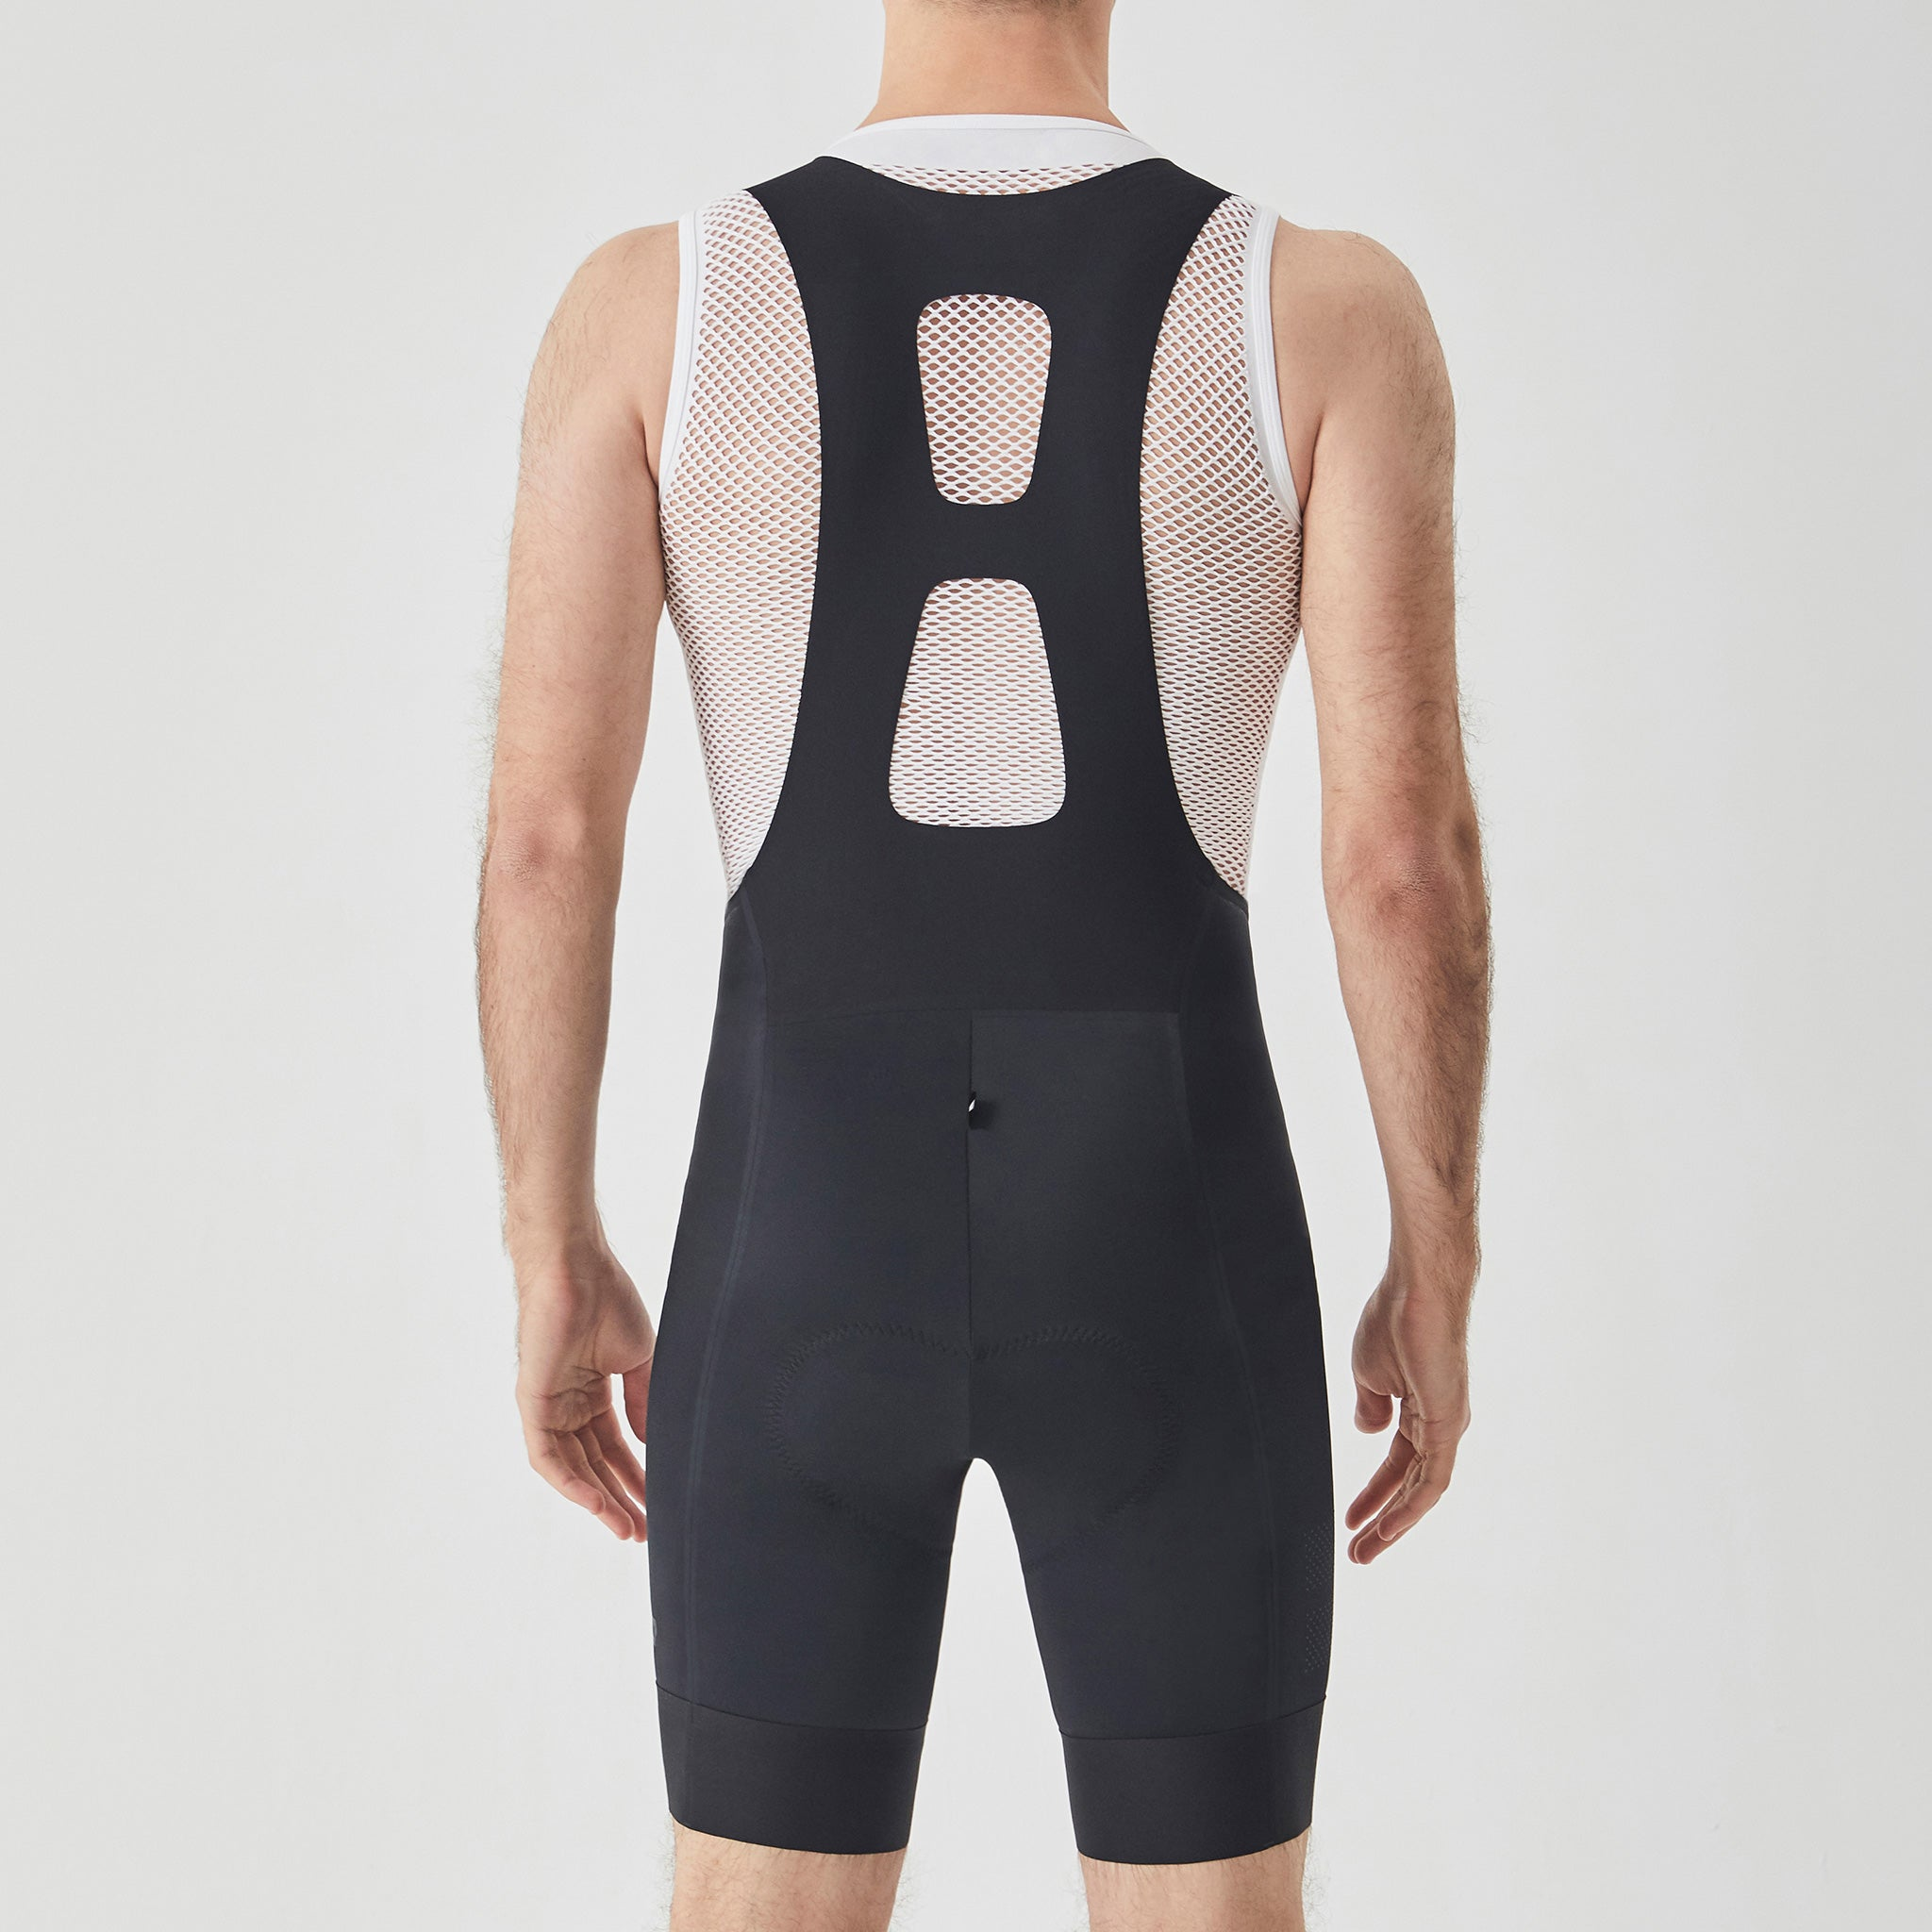 Race Bib Shorts